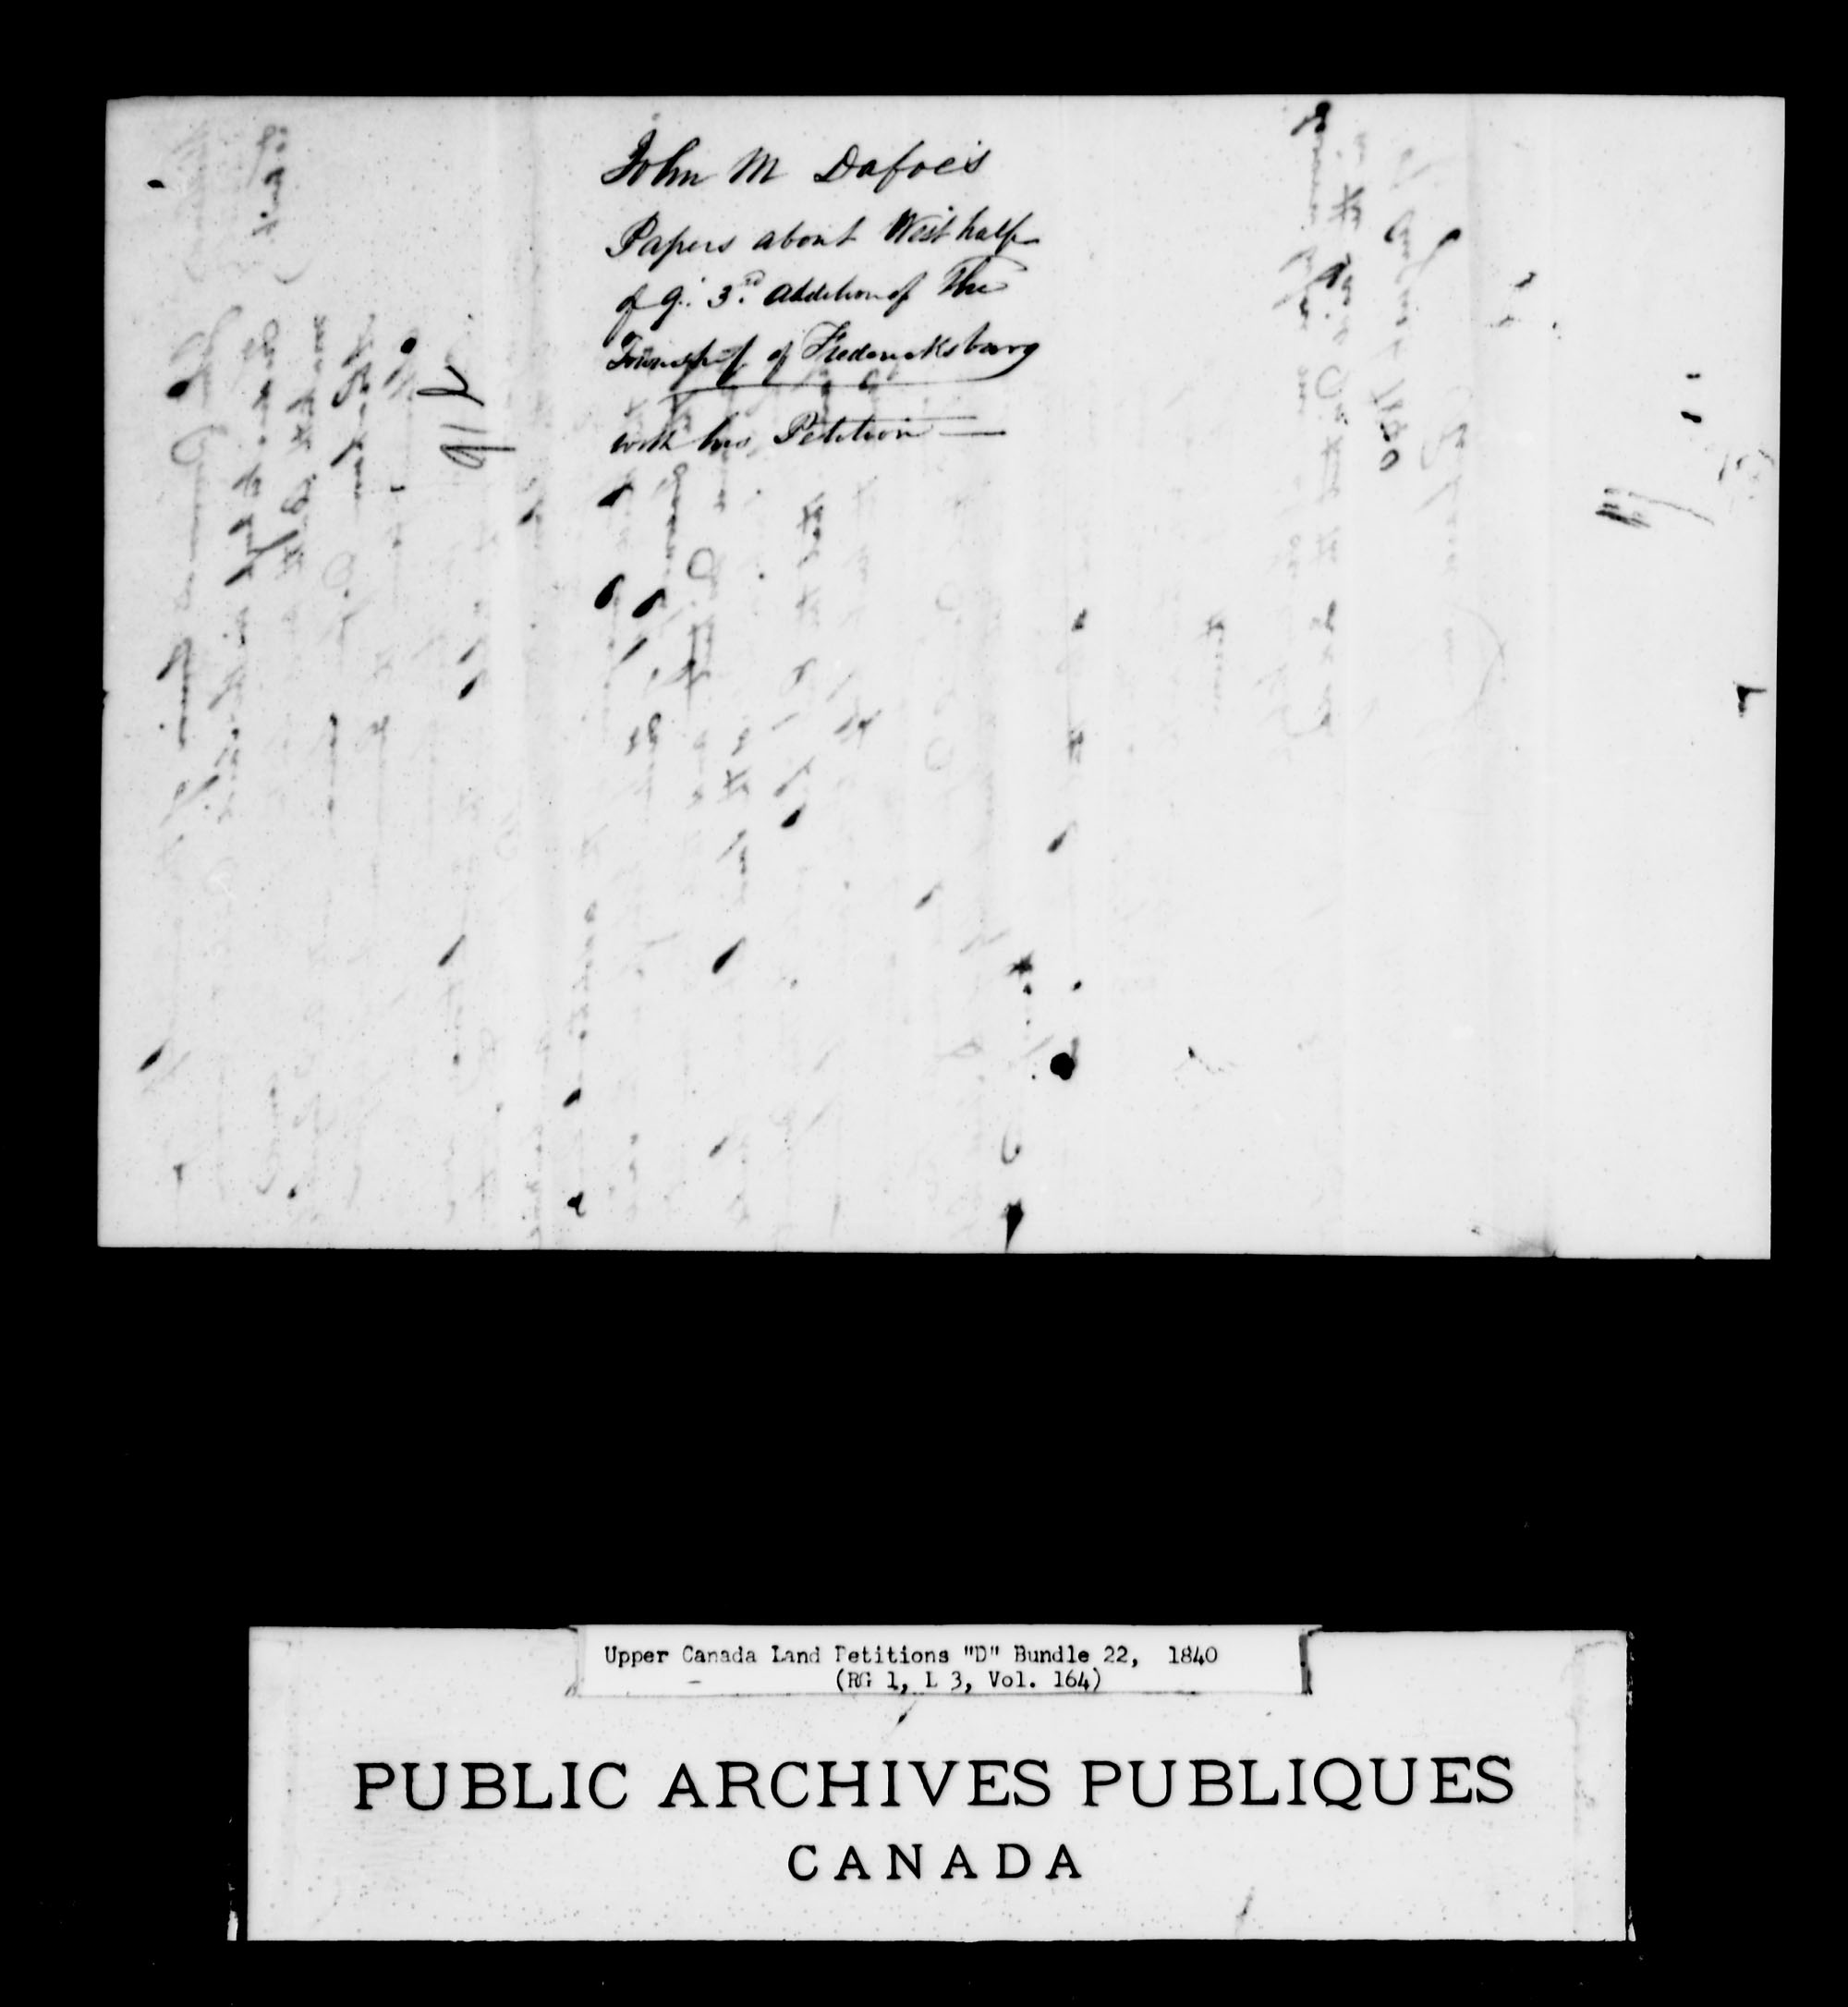 Title: Upper Canada Land Petitions (1763-1865) - Mikan Number: 205131 - Microform: c-1879